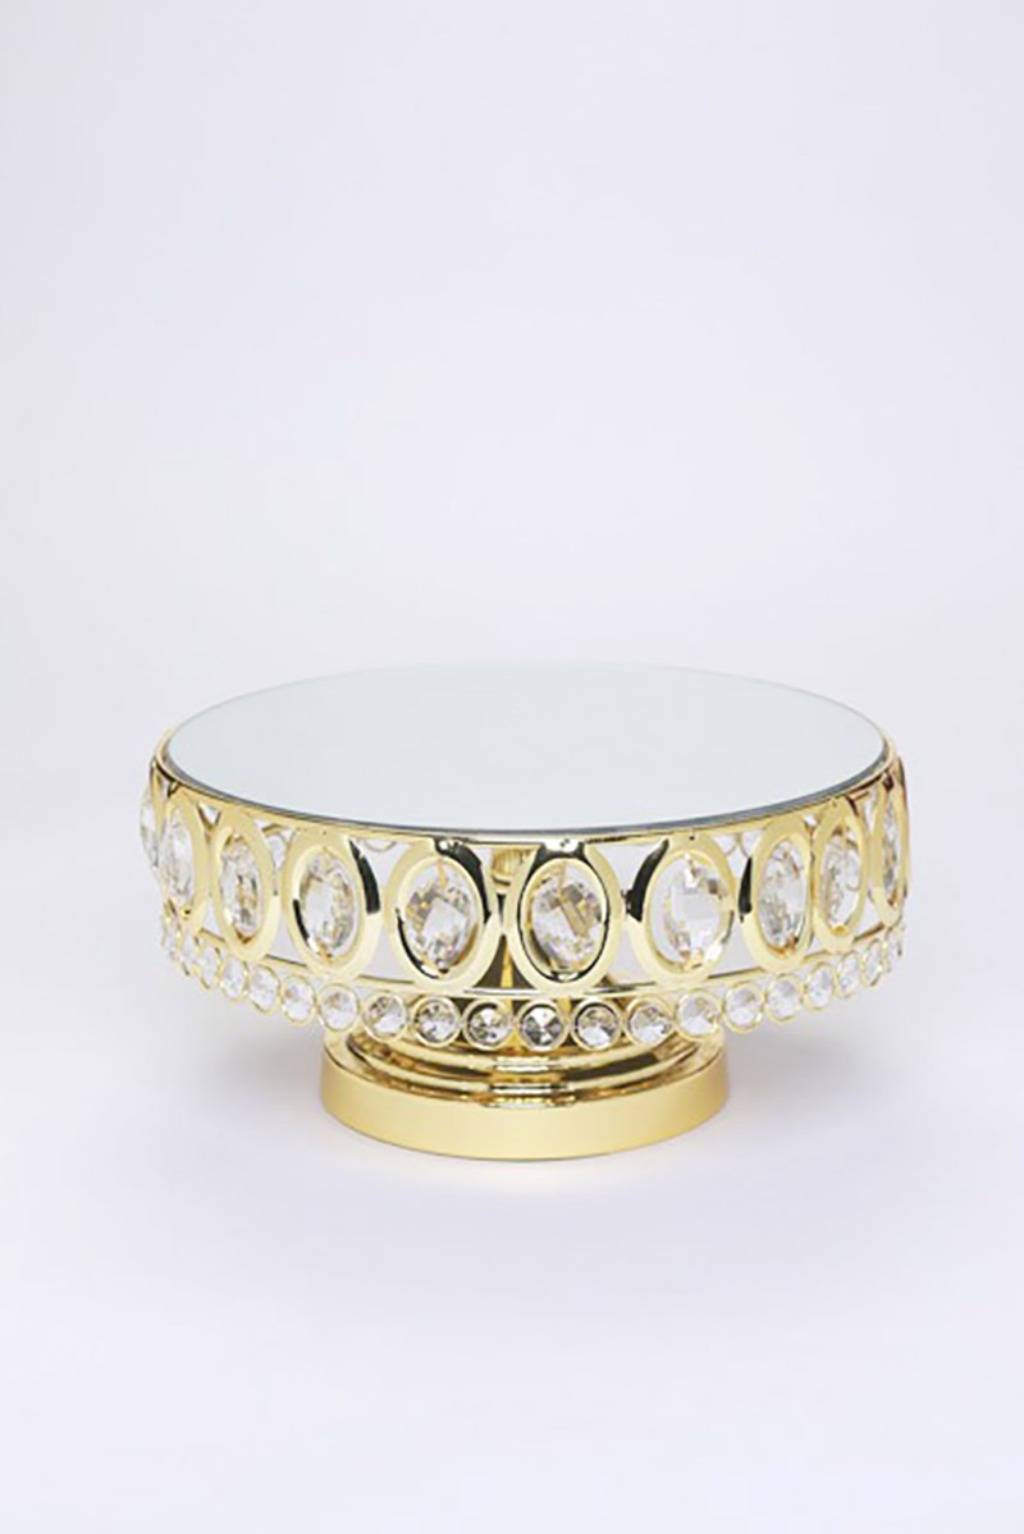 Beautiful Gold Bling! Opulent Treasures collection of cake stands, dessert stands, cupcake stands & more can help you to create